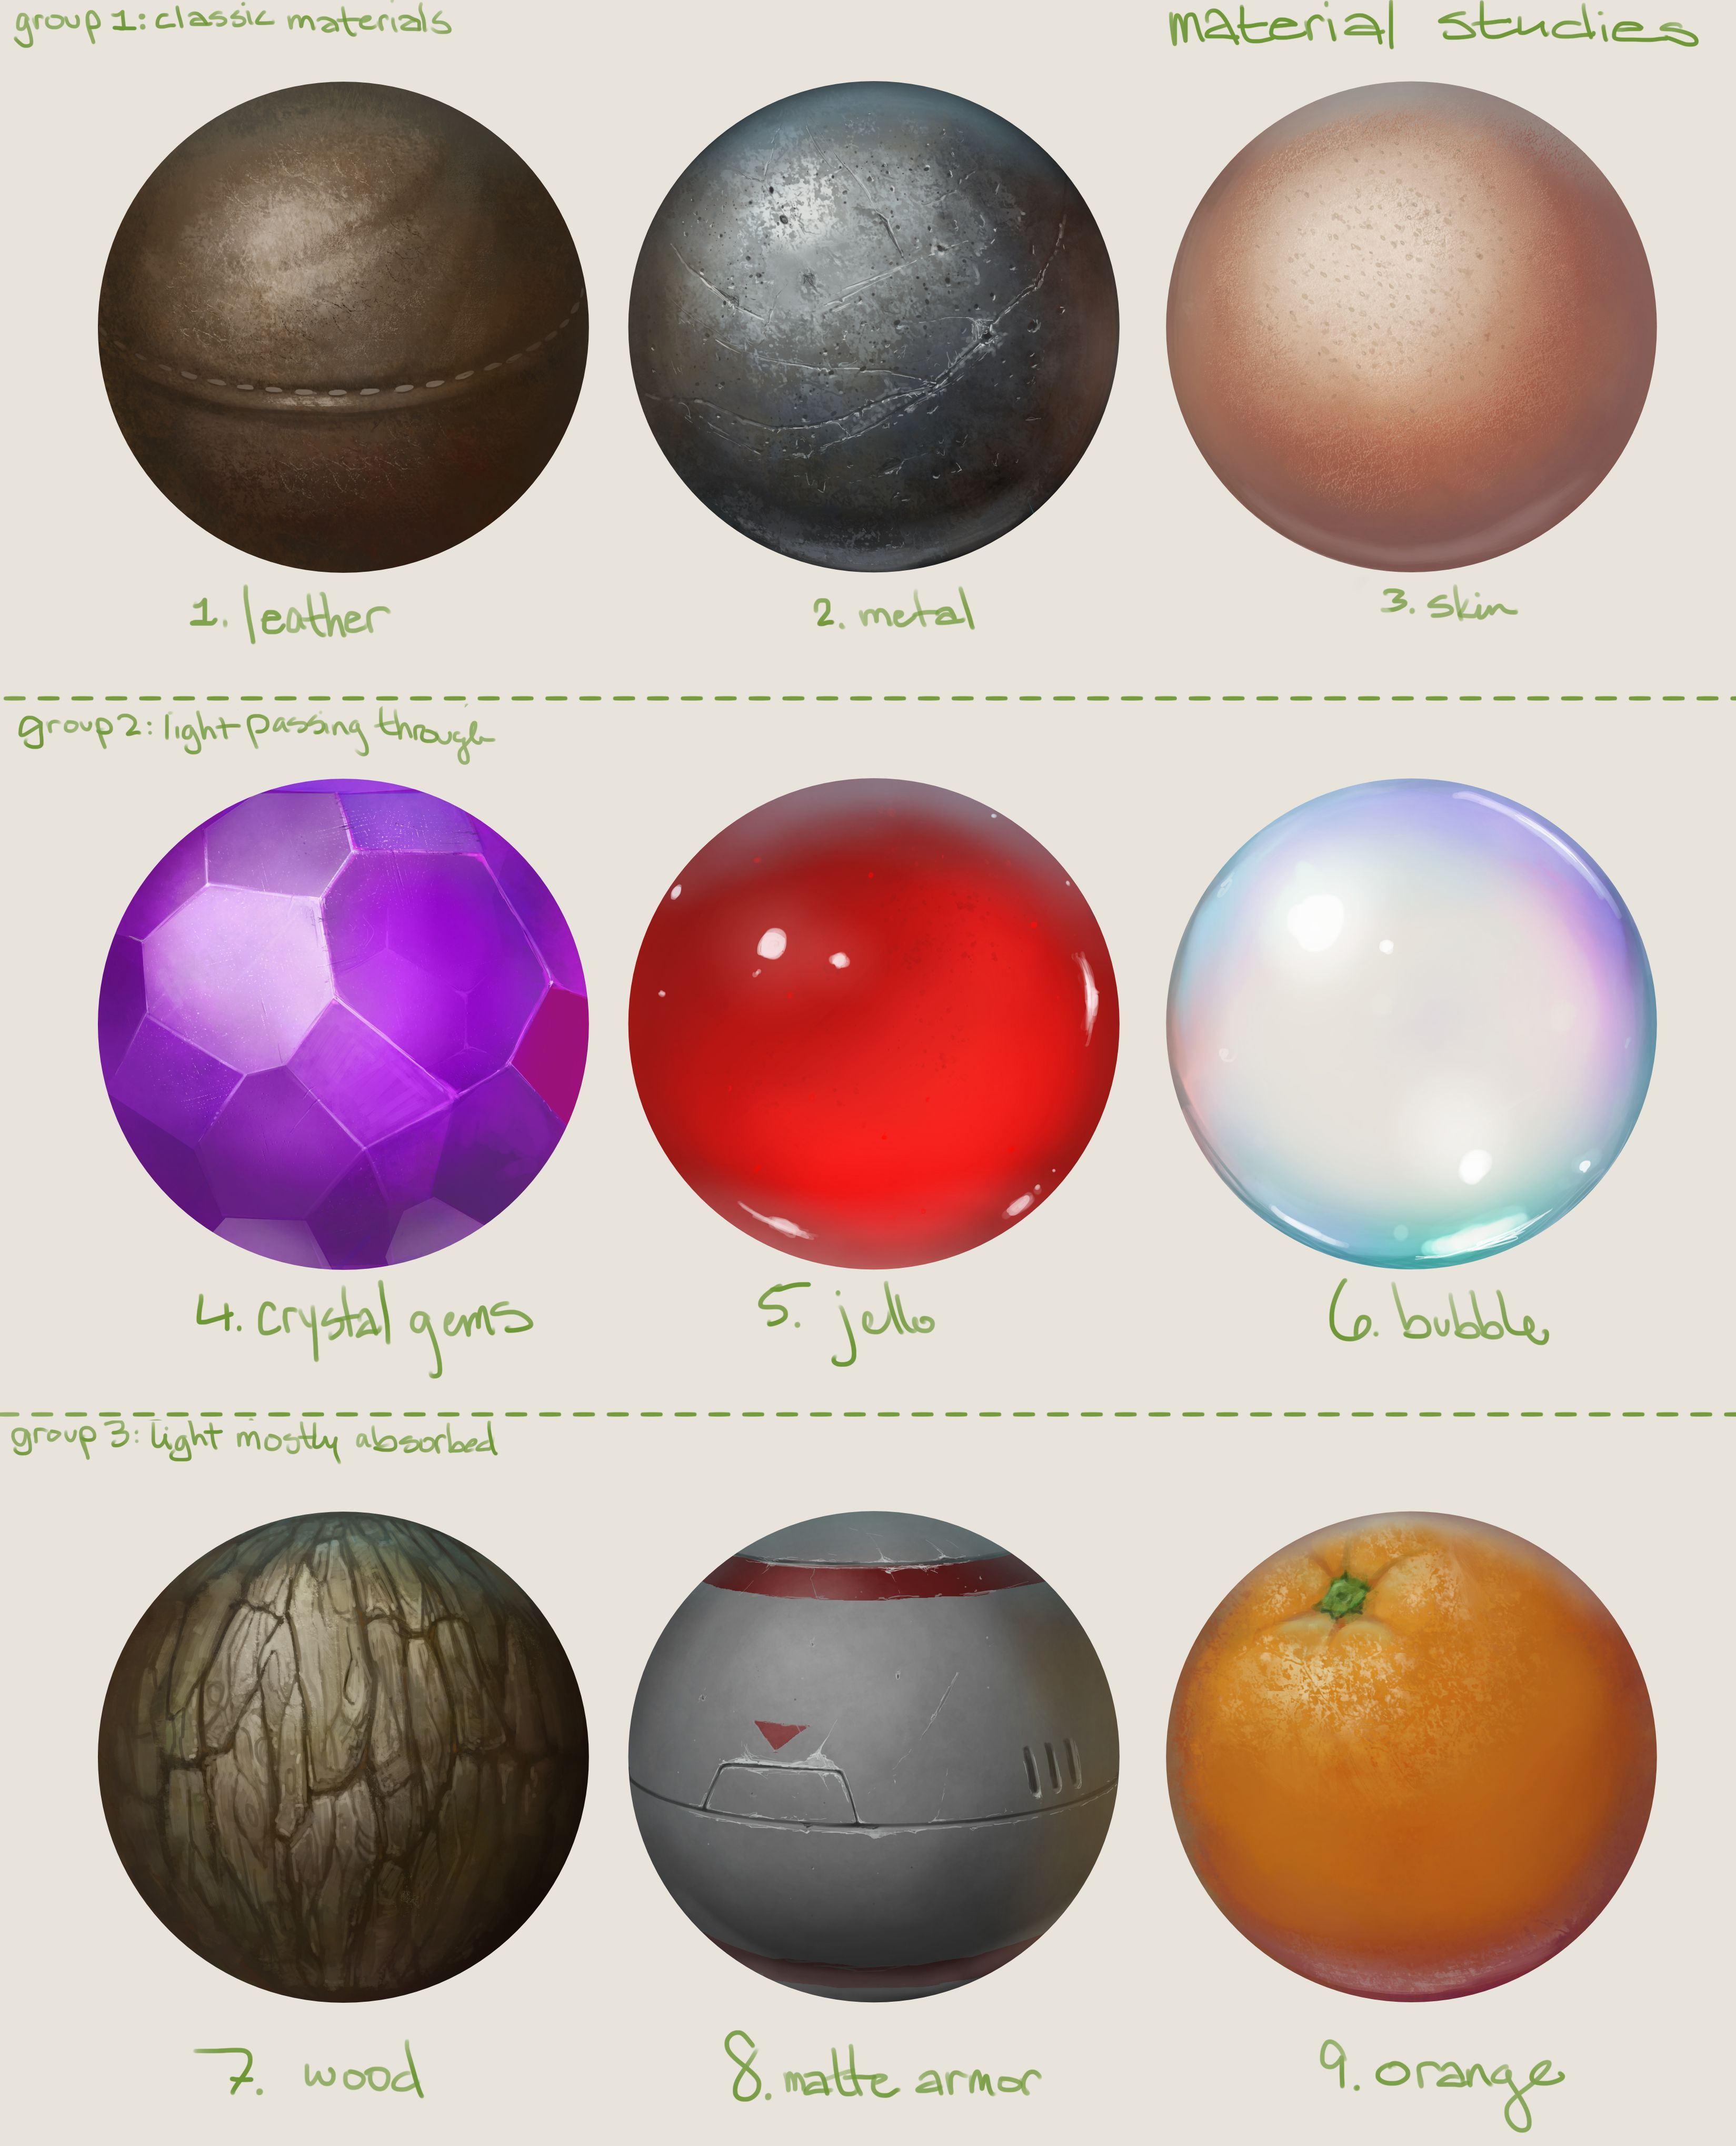 Exercise: Material Studies